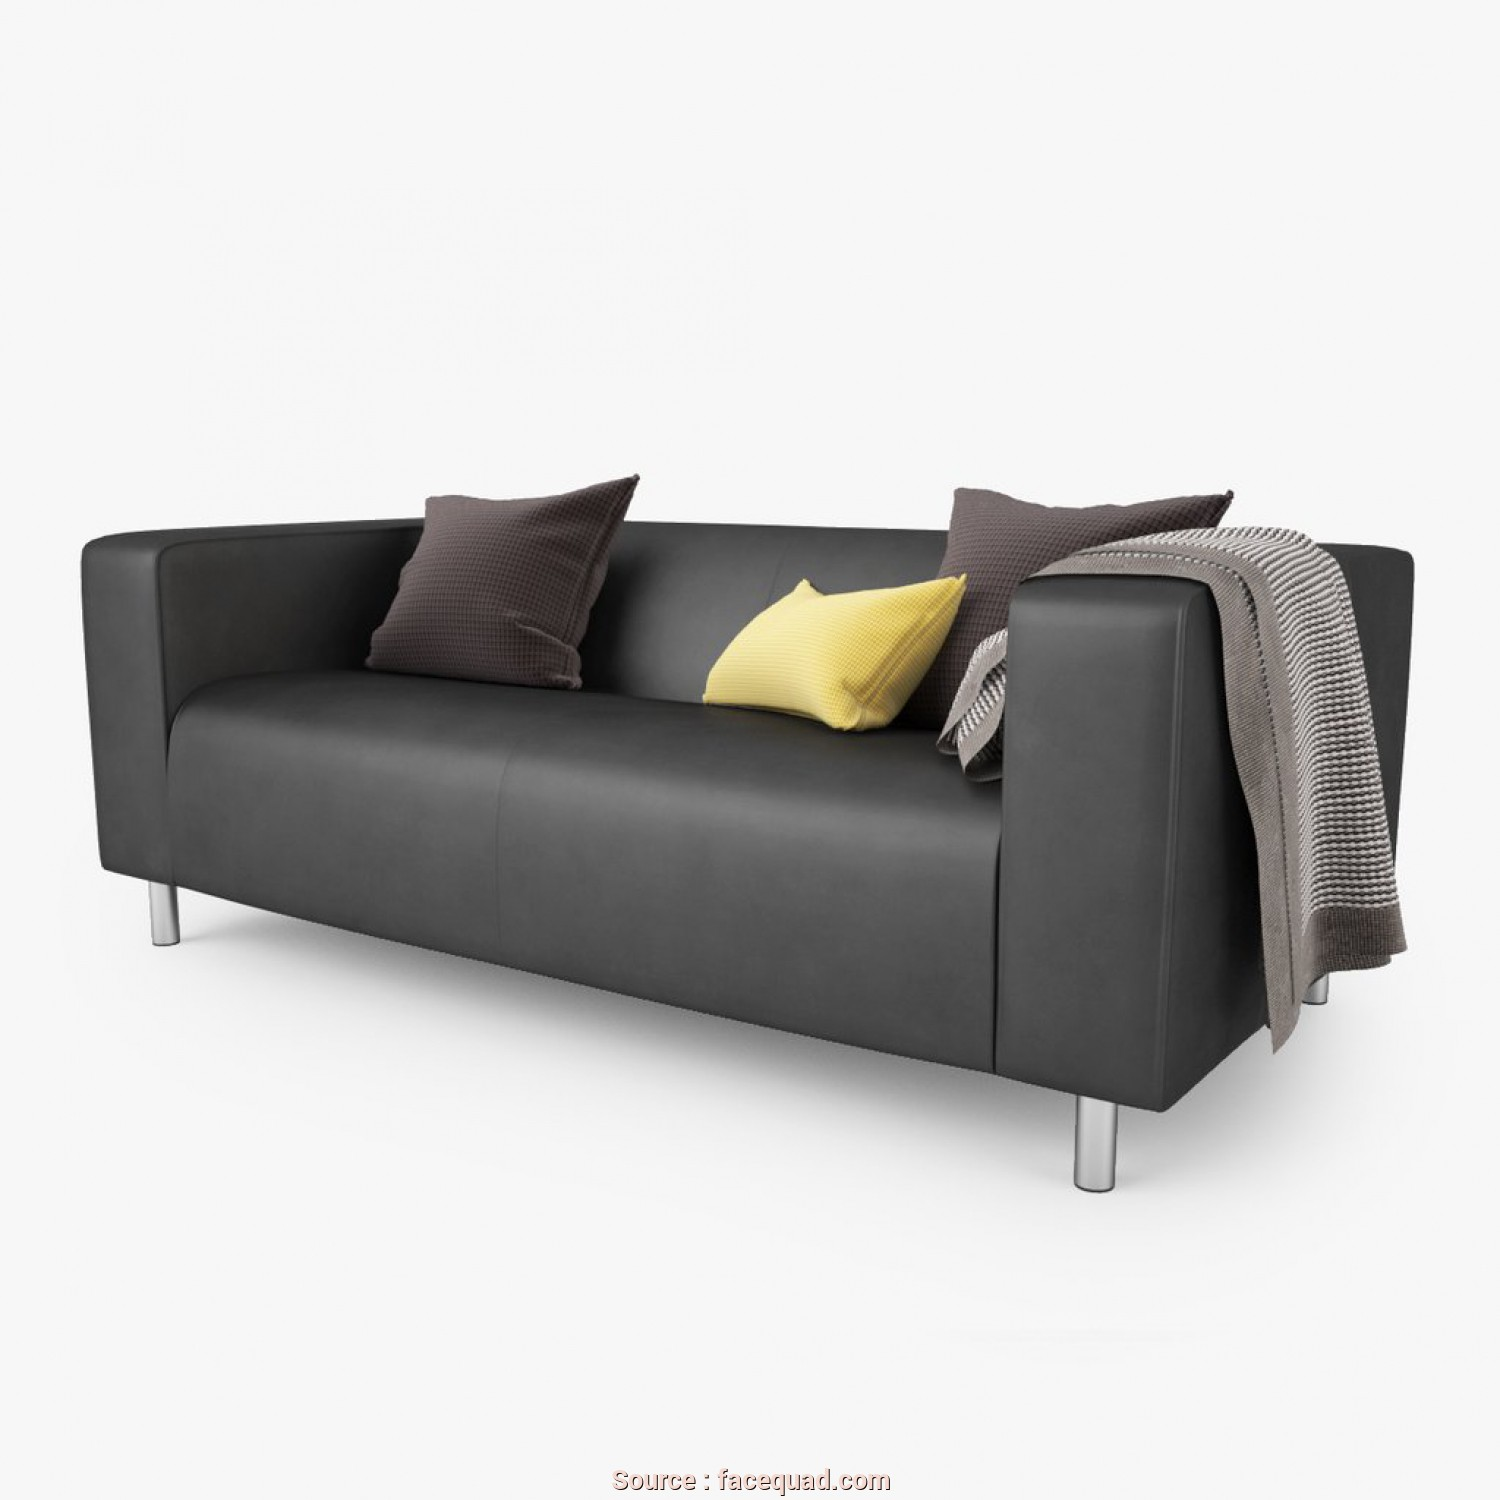 Ikea Klippan Loveseat Dimensions, Originale FREE IKEA Klippan Loveseat Sofa 3D Model, FaceQuad